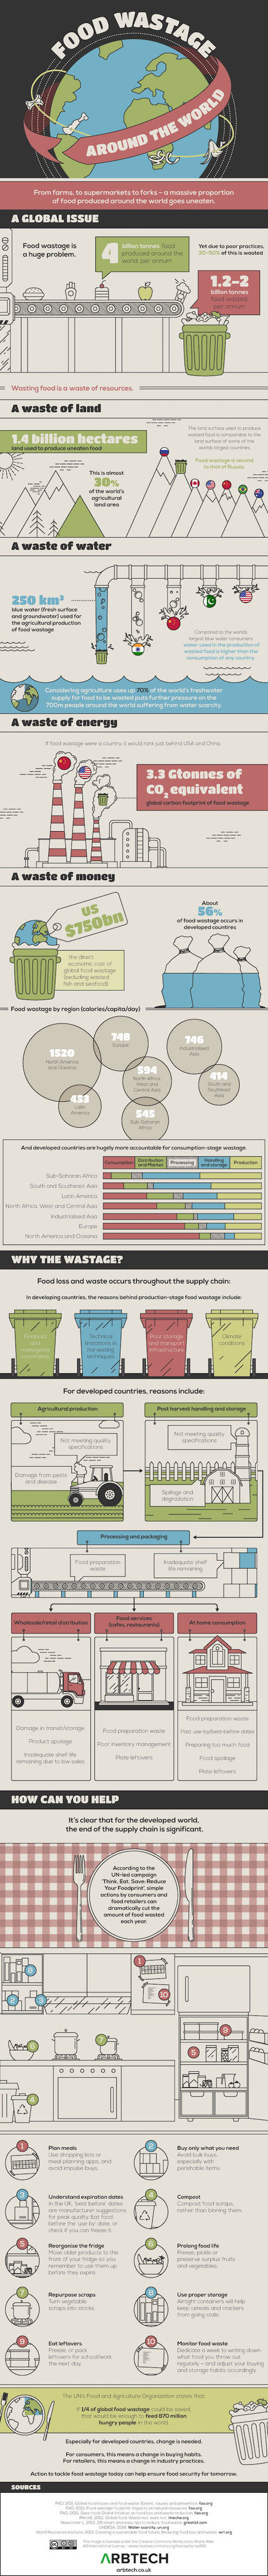 INFOGRAPHIC: How food waste has become a huge global problem | following geography education | Scoop.it